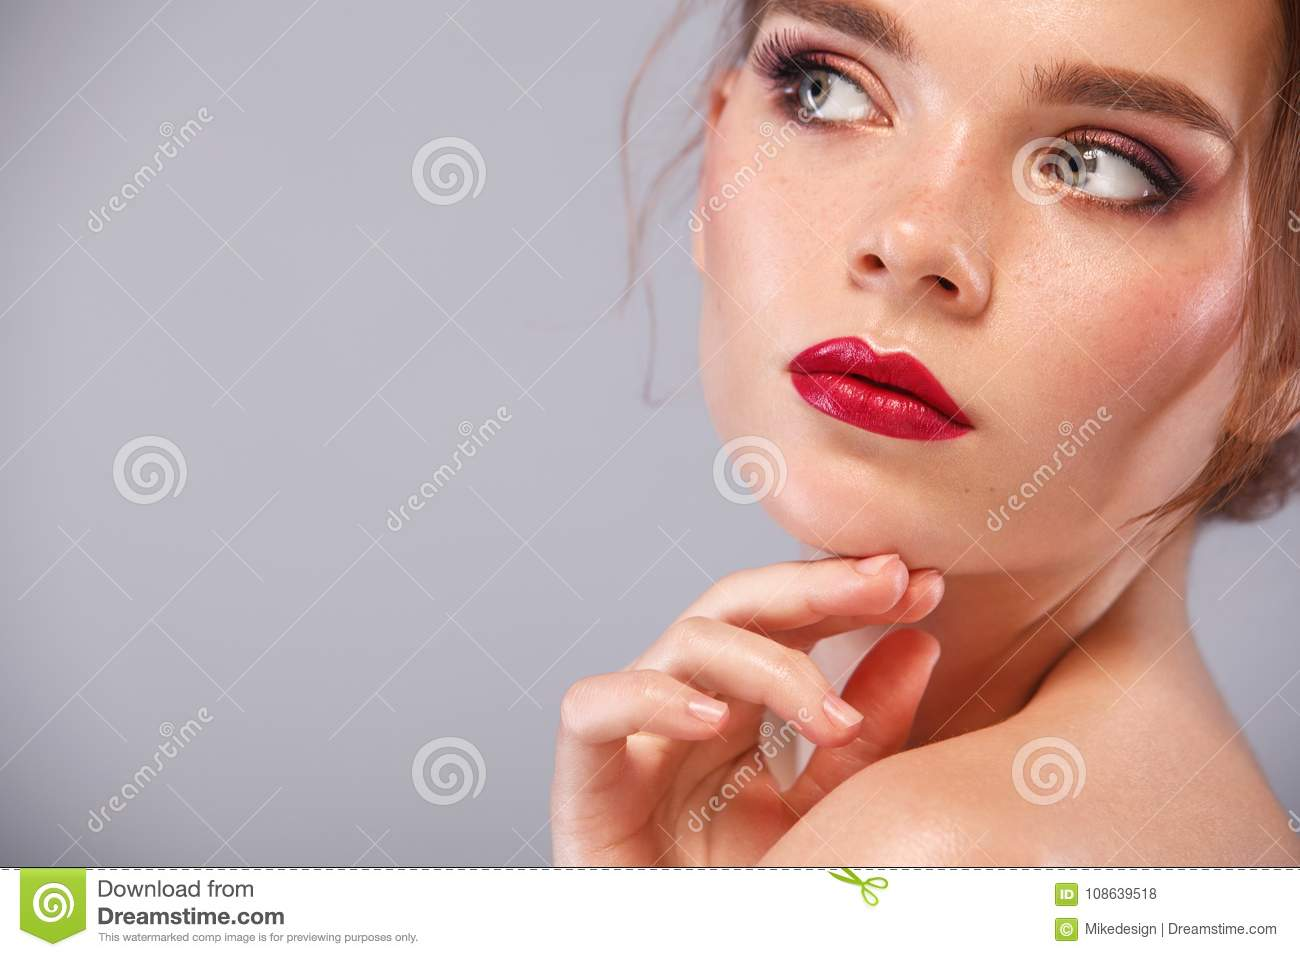 Closeup Portrait Of Beautiful Young Woman Model With Clean